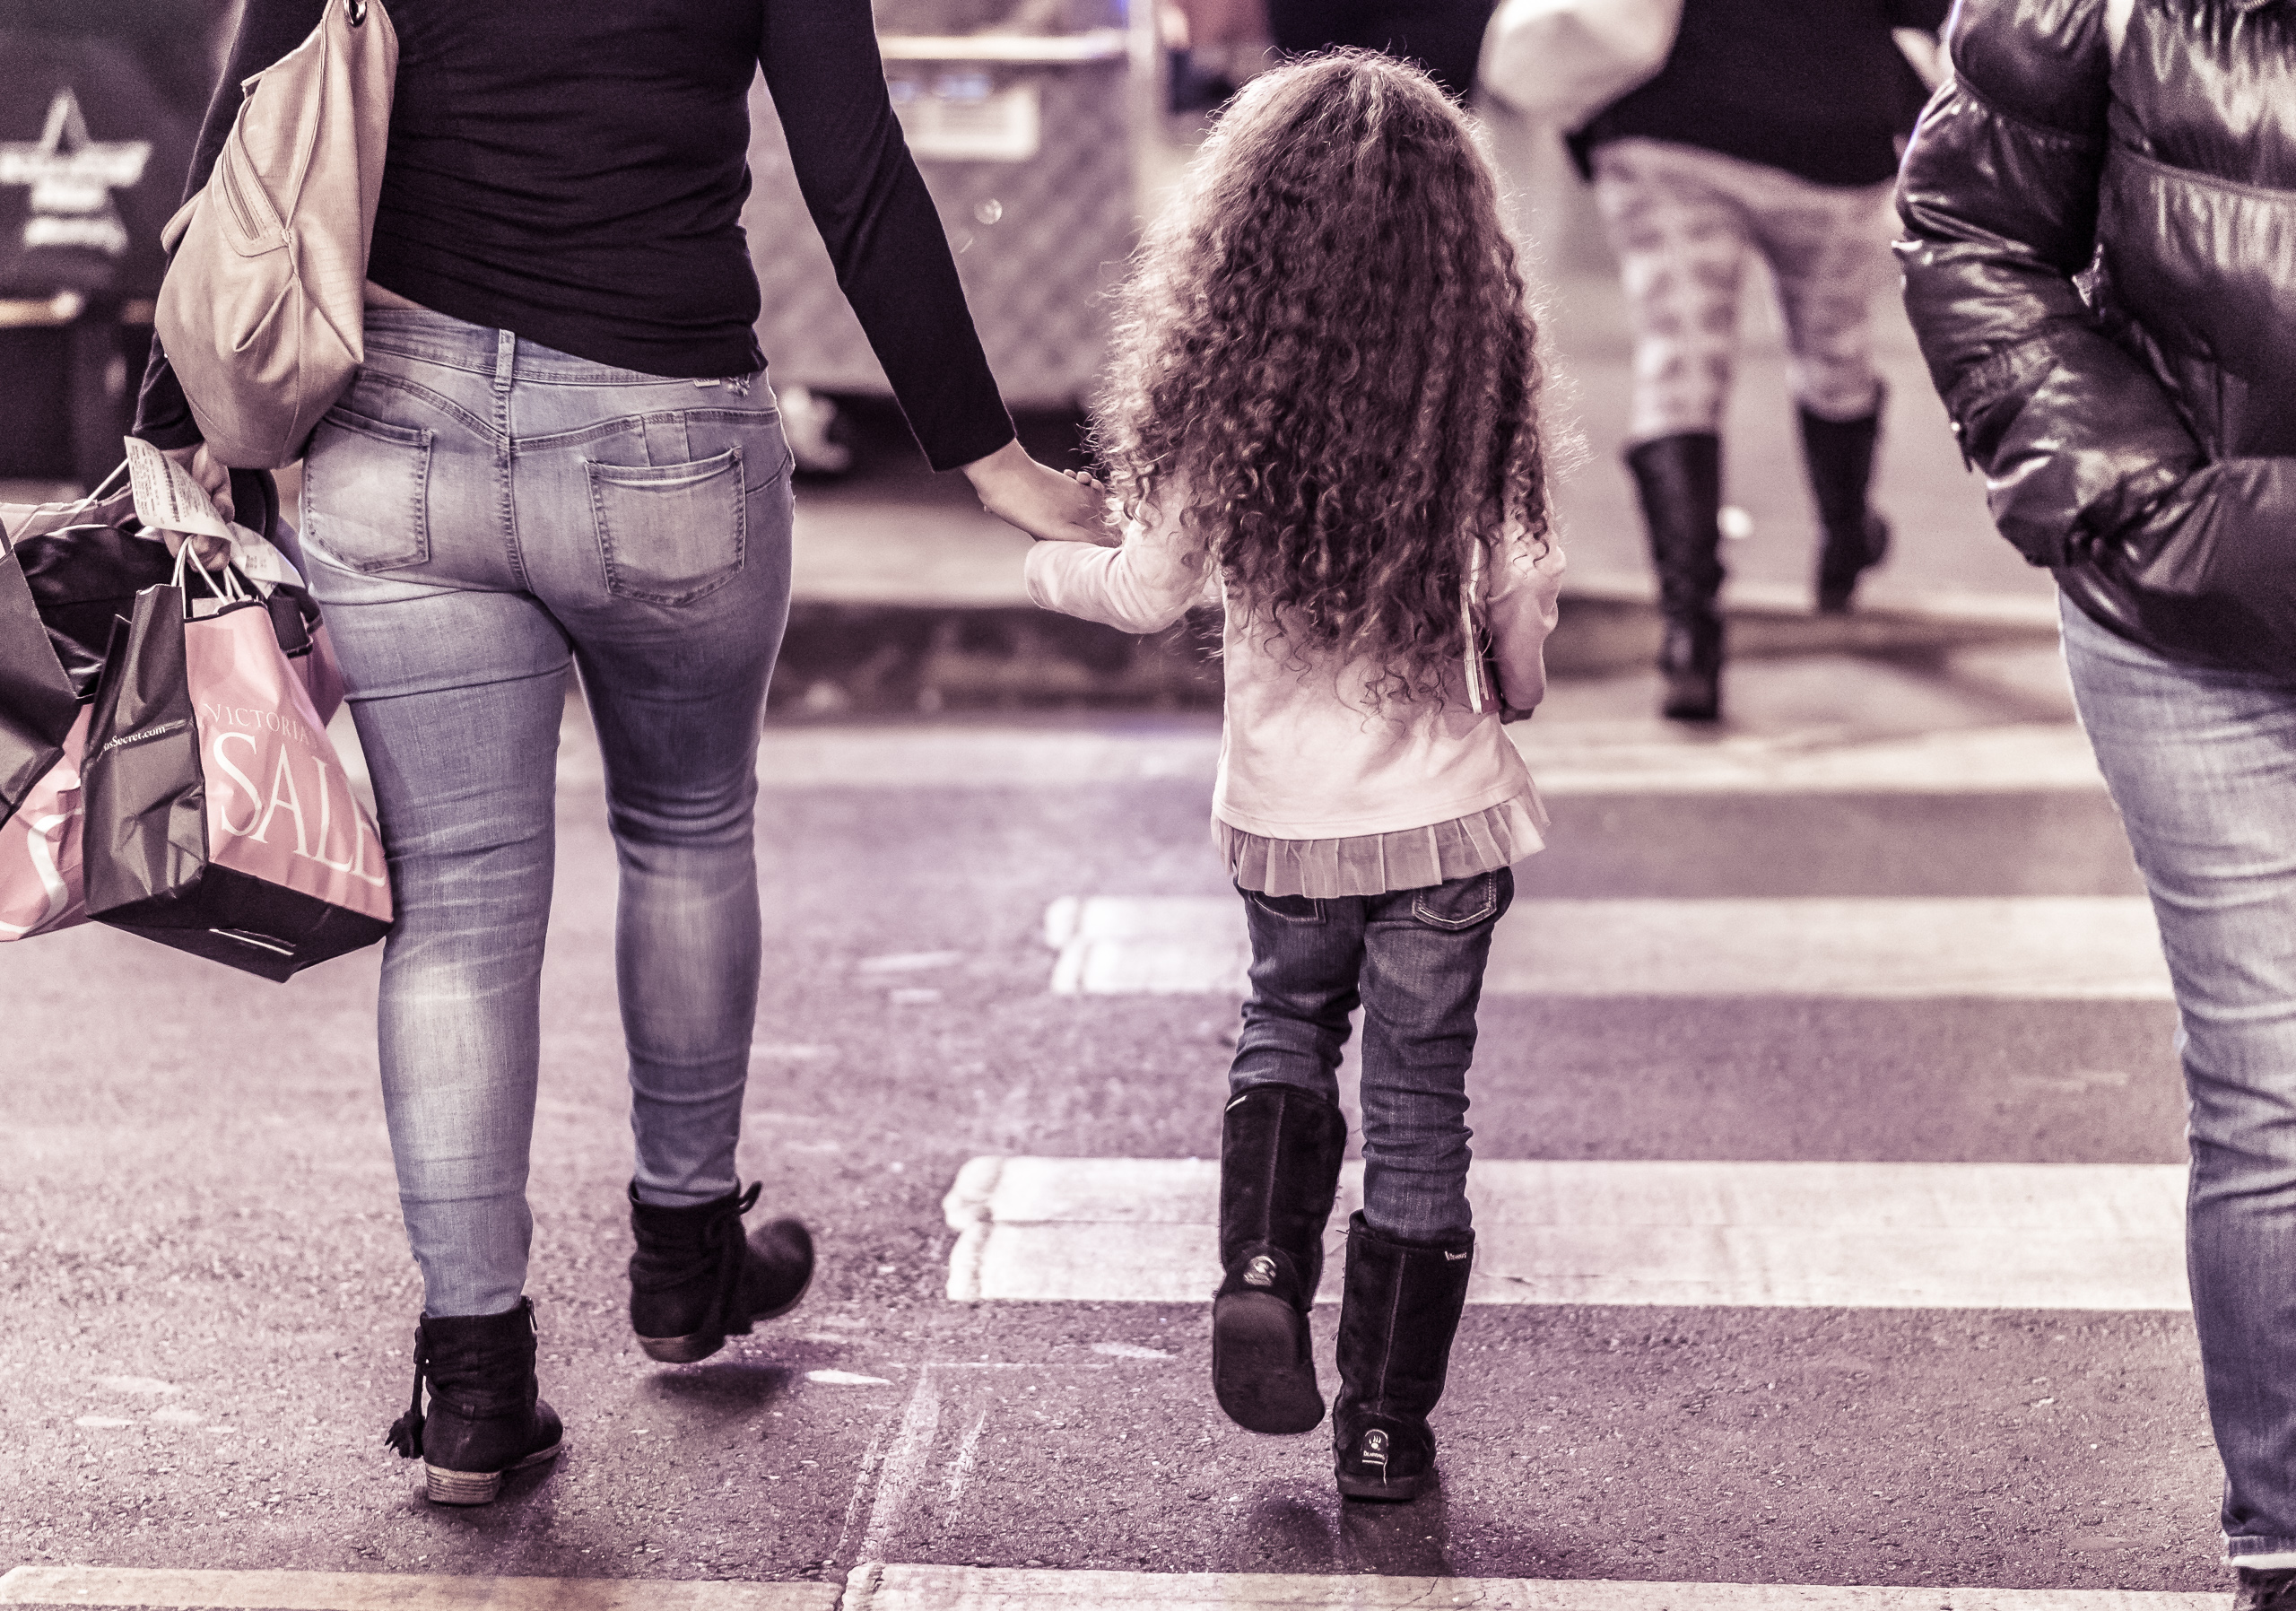 a small girl in uggs crosses the street holding her mother's hand